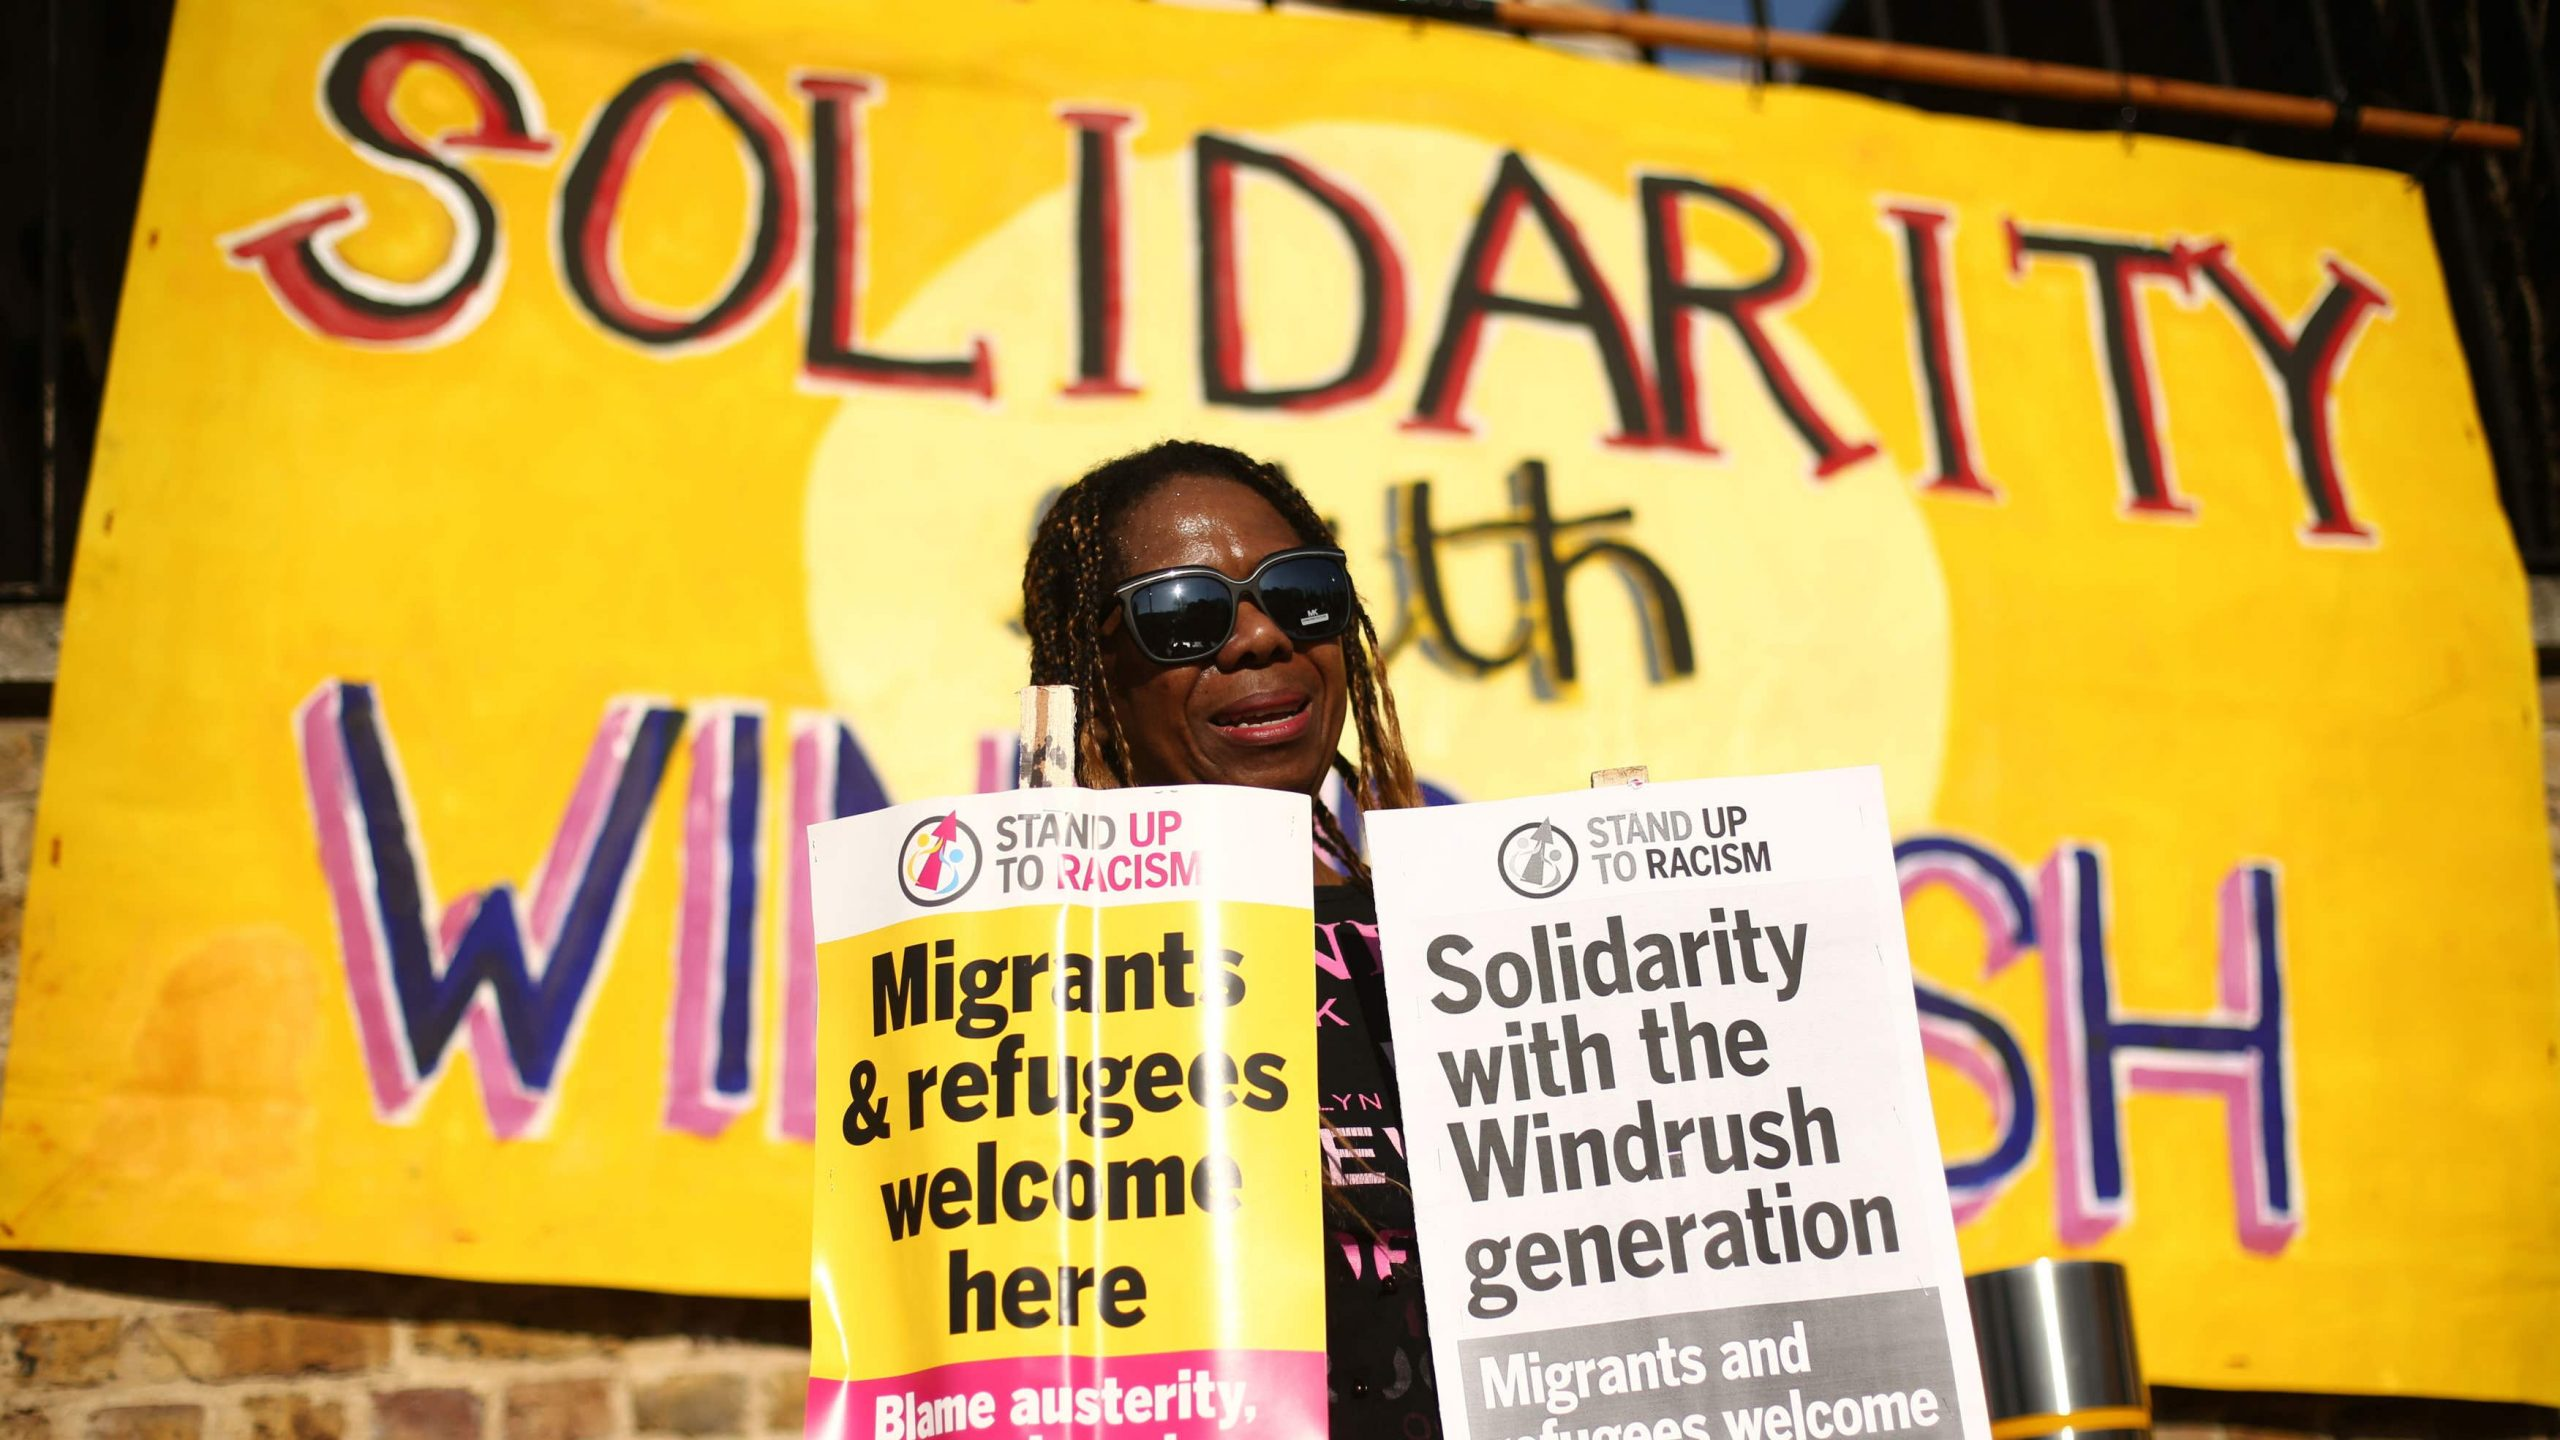 Read more about the article Home Office failing Windrush generation a second time, warn MPs